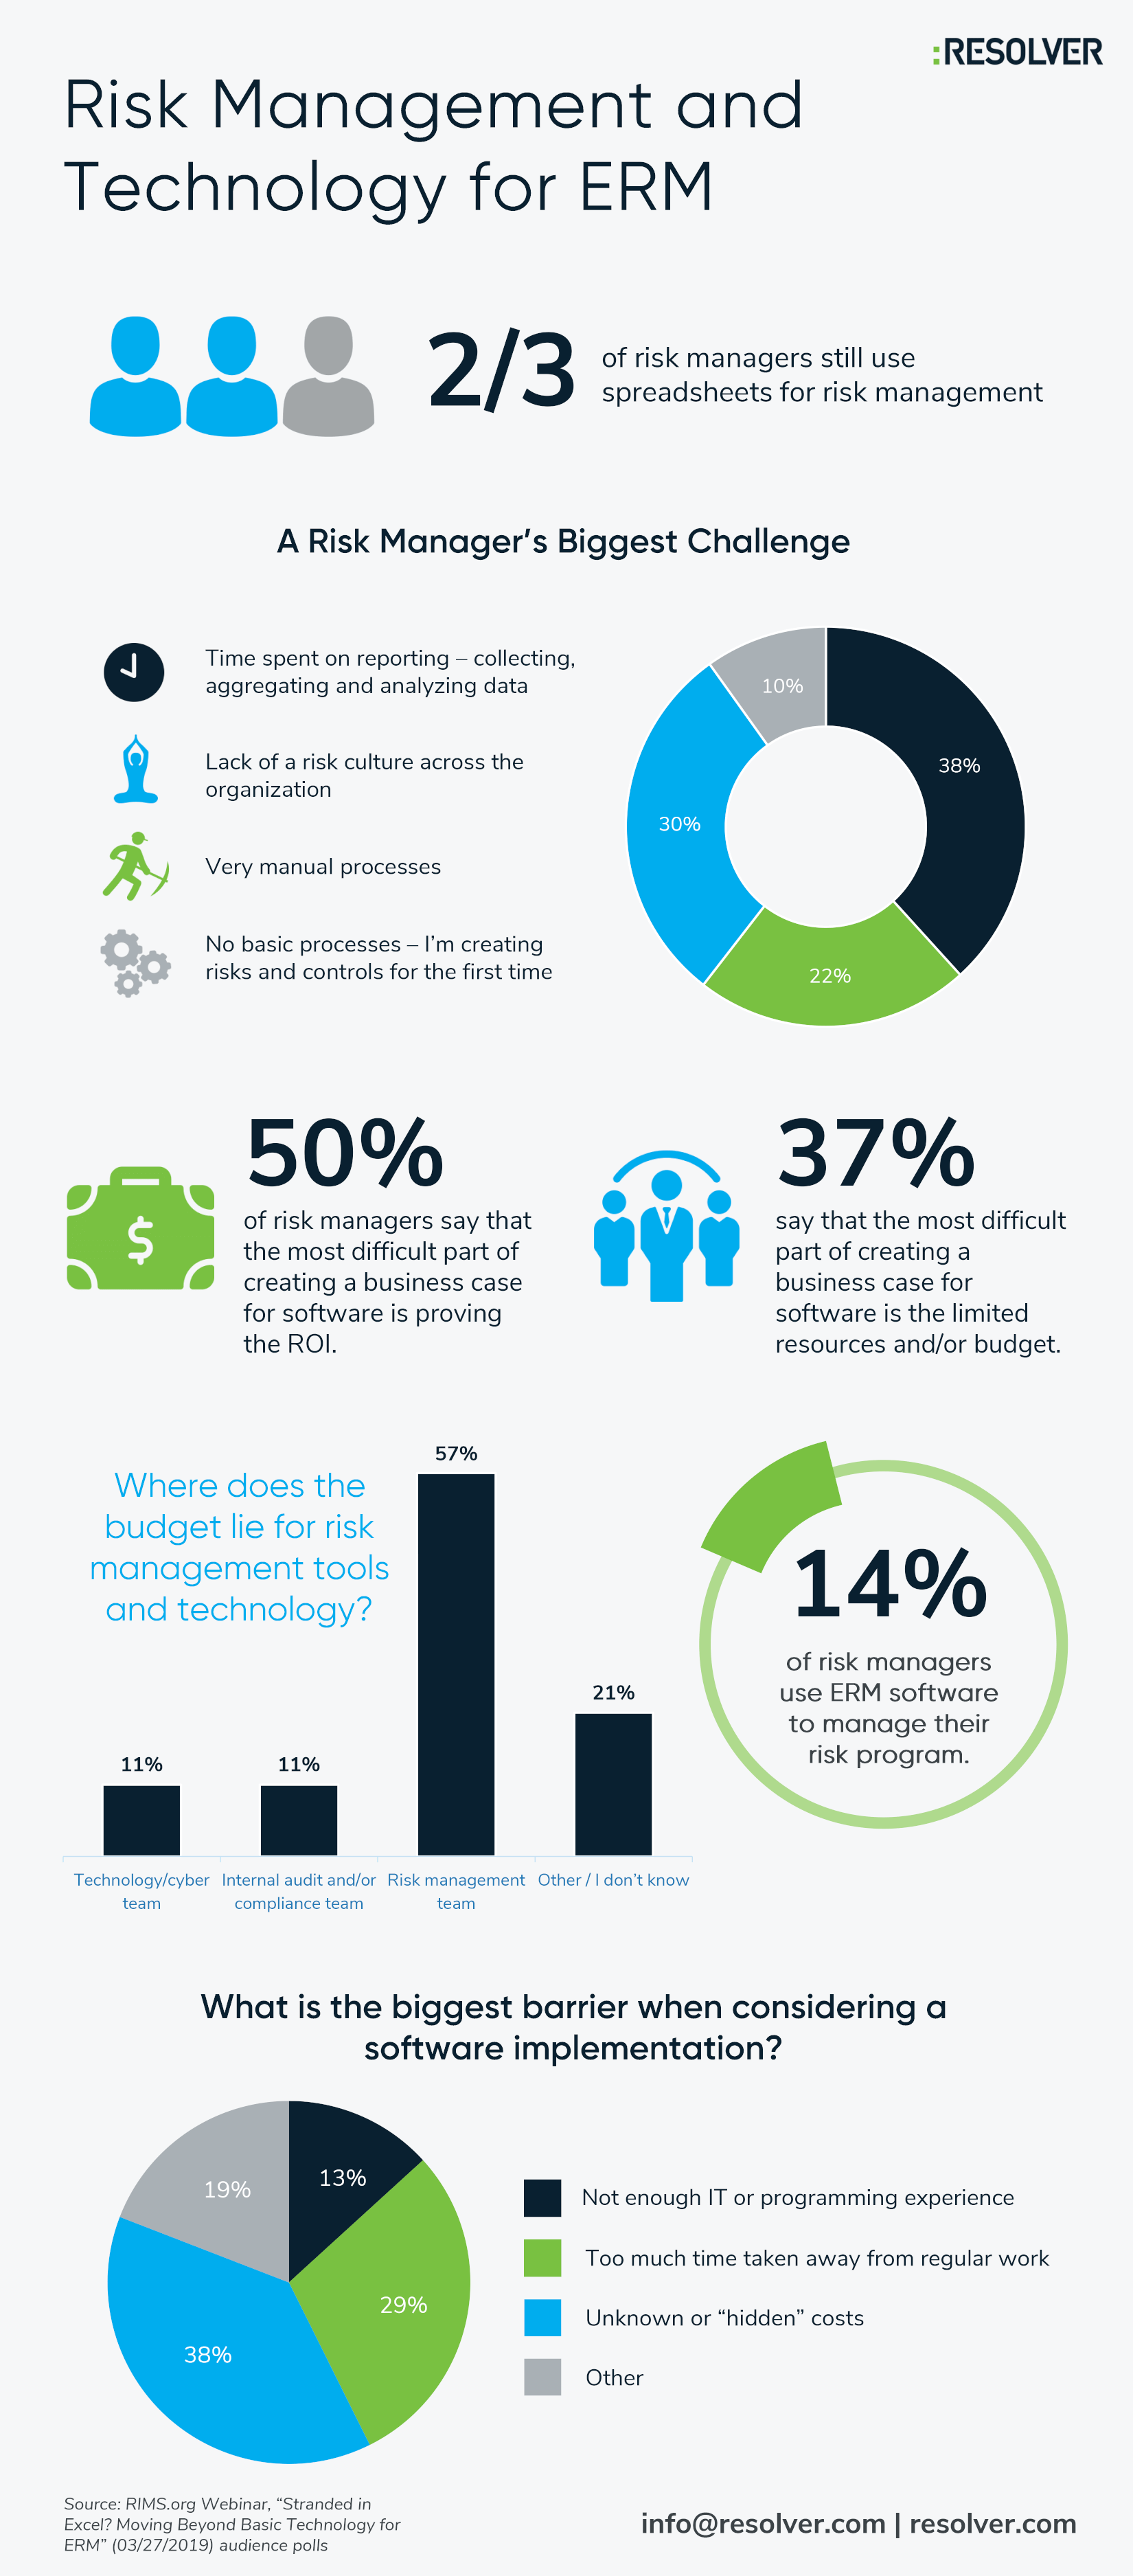 Risk Management and Technology for ERM infographic